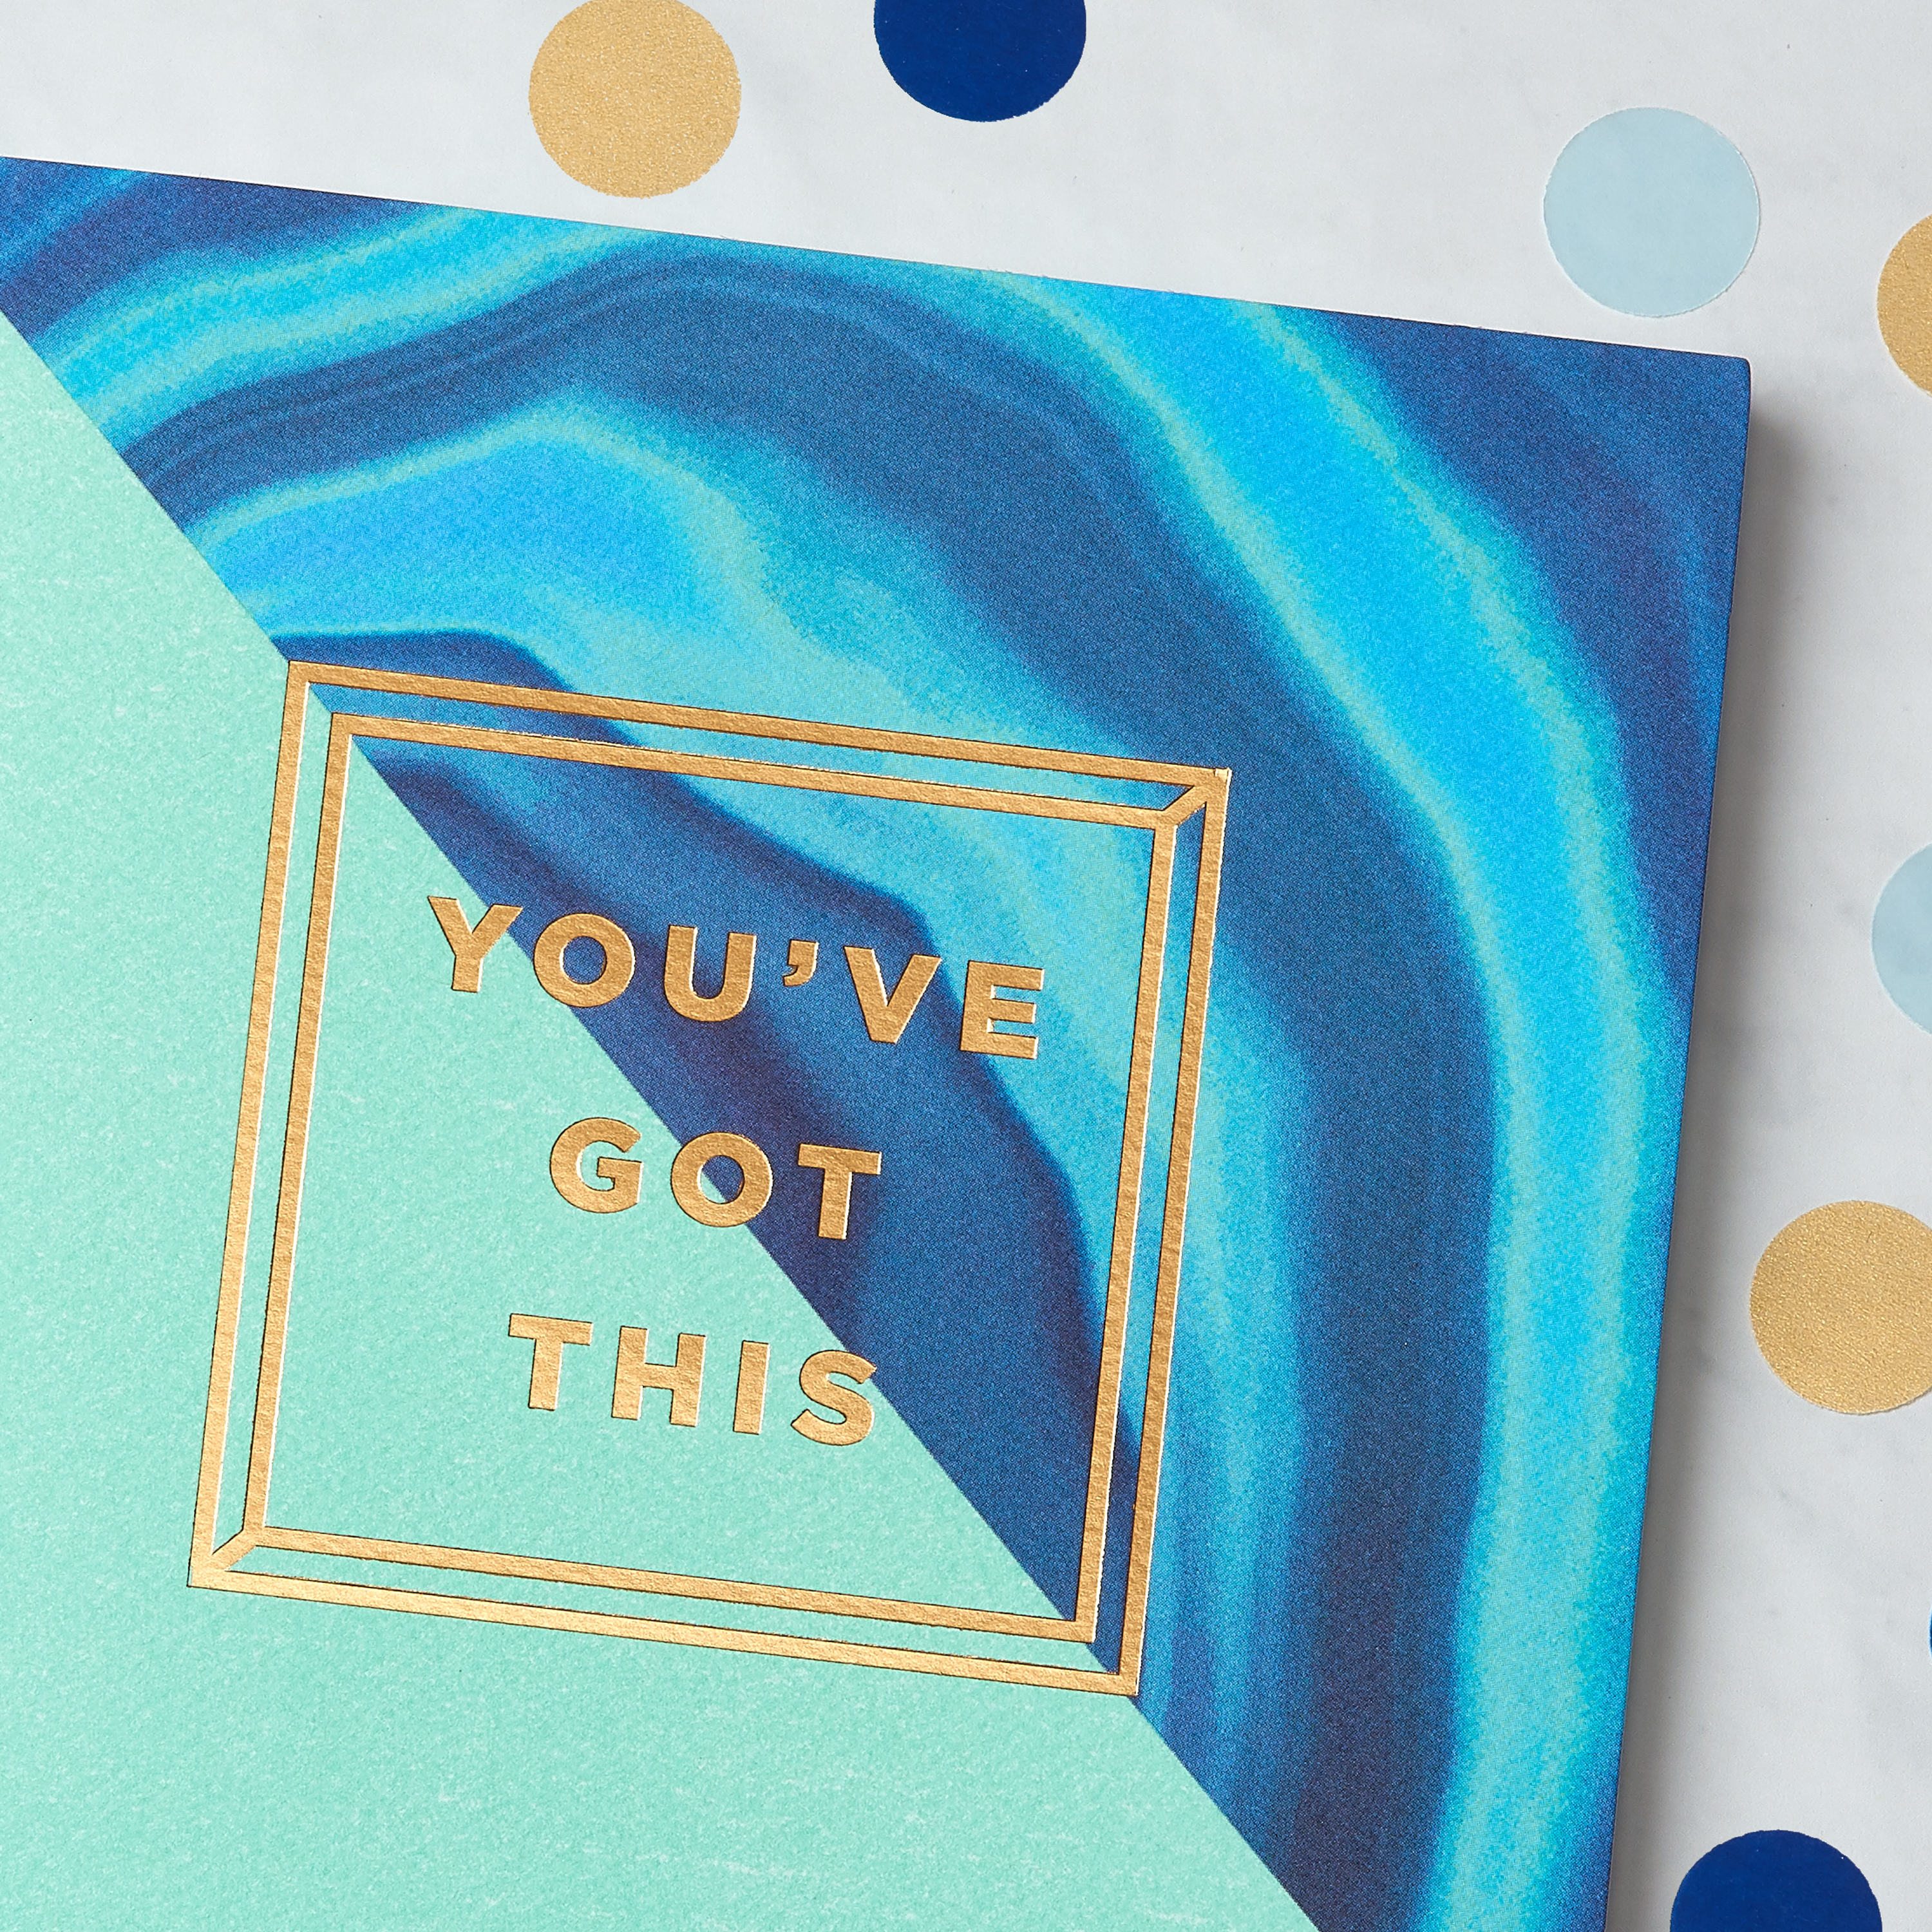 You've Got This Greeting Card - Support, Thinking of You, Encouragement image